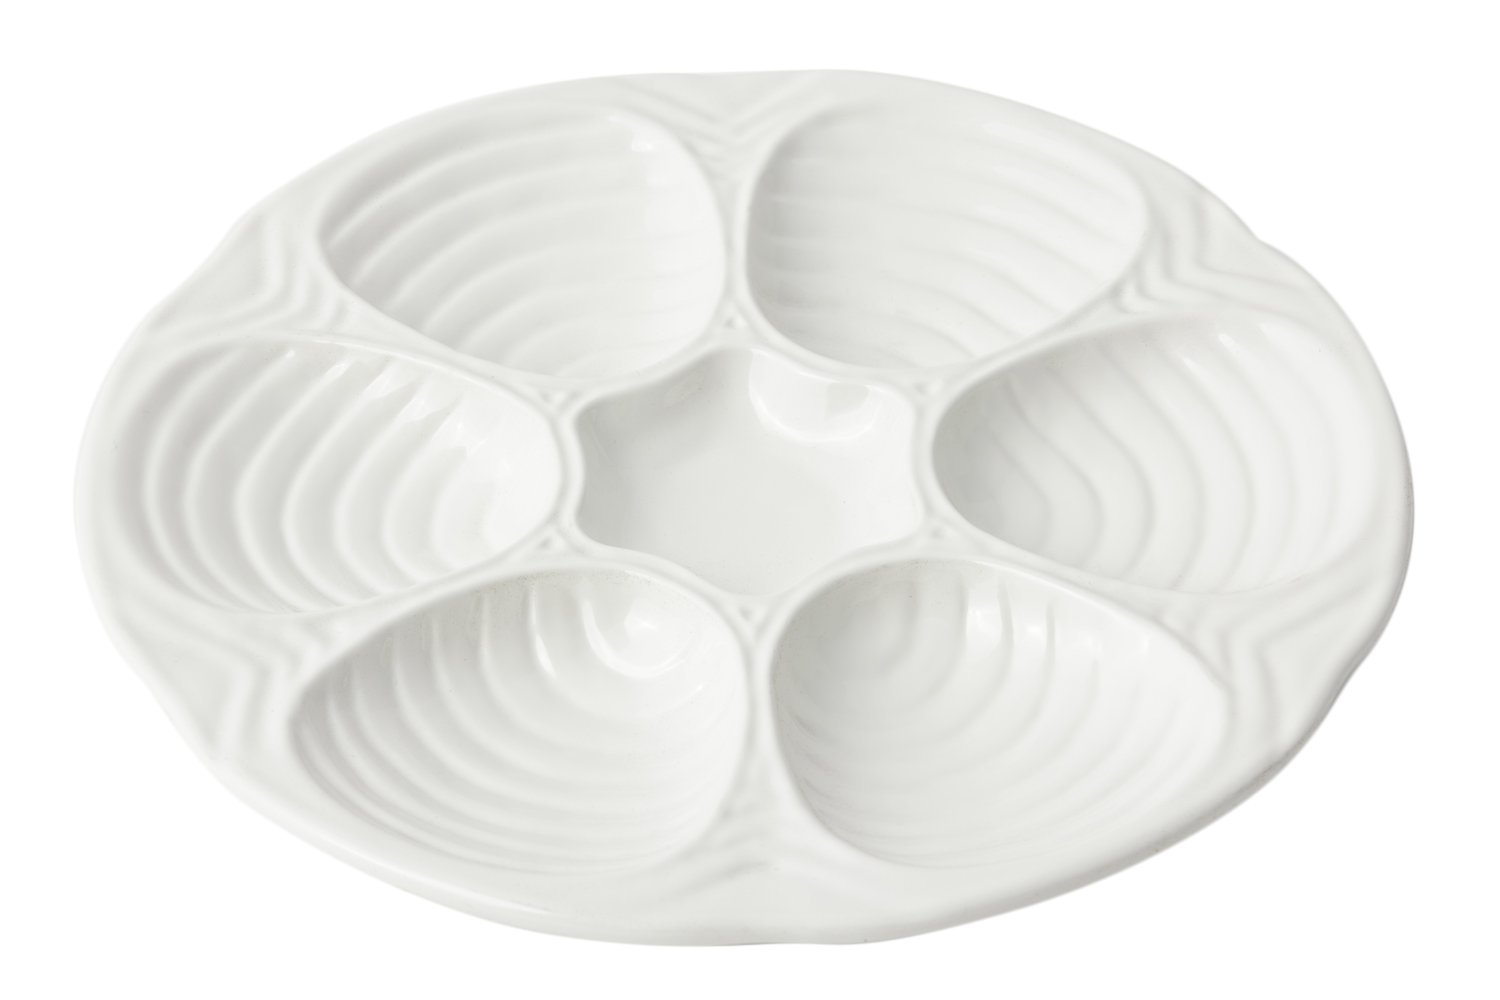 Bon Chef 5017BLK Aluminum Oyster/Clam Plate, 10-1/2